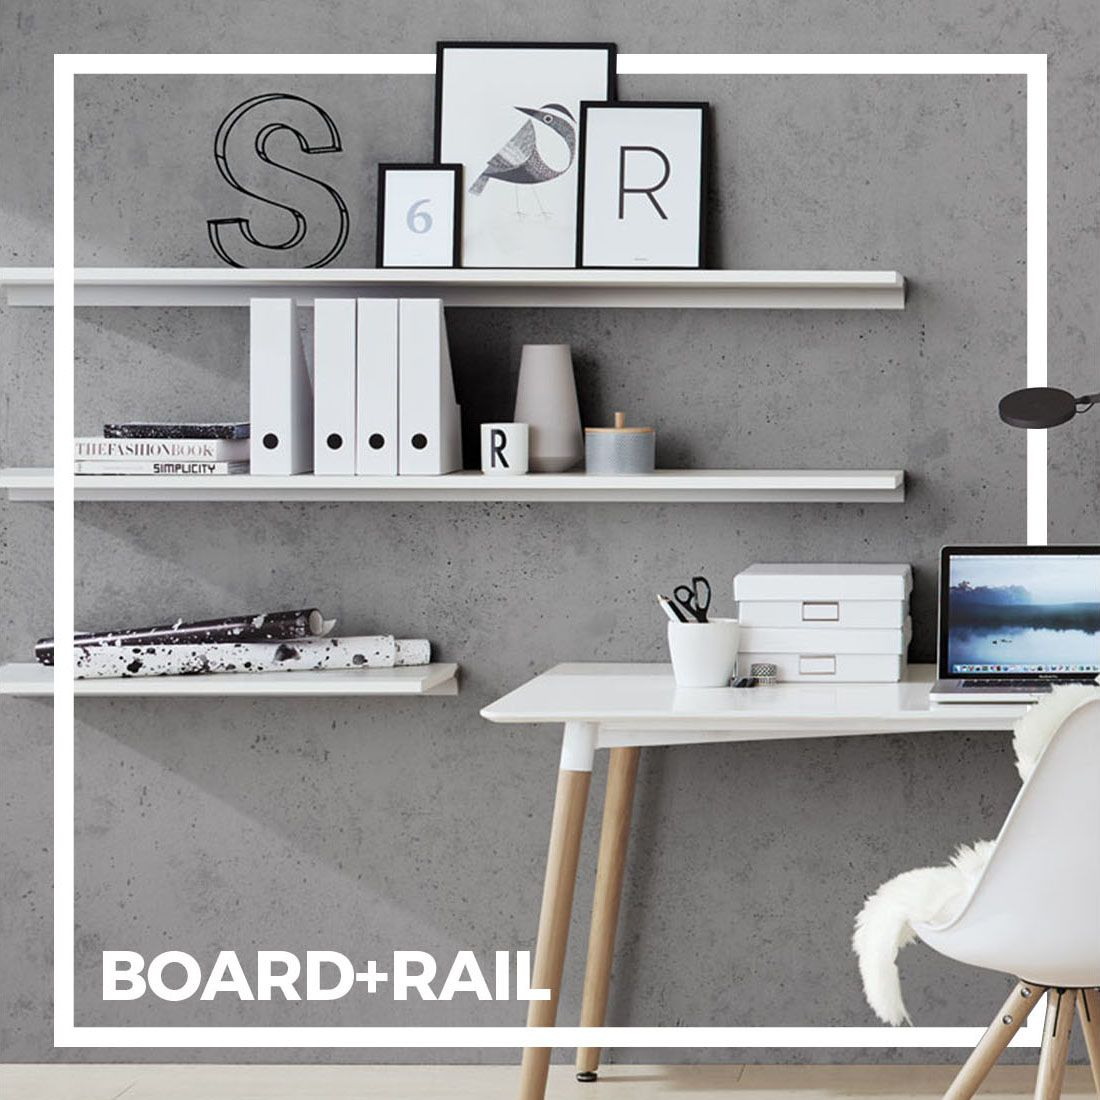 Wandregal Metall Nach Maß Board Rail Wandregal Nach Maß In 2019 Regalraum Wandregal